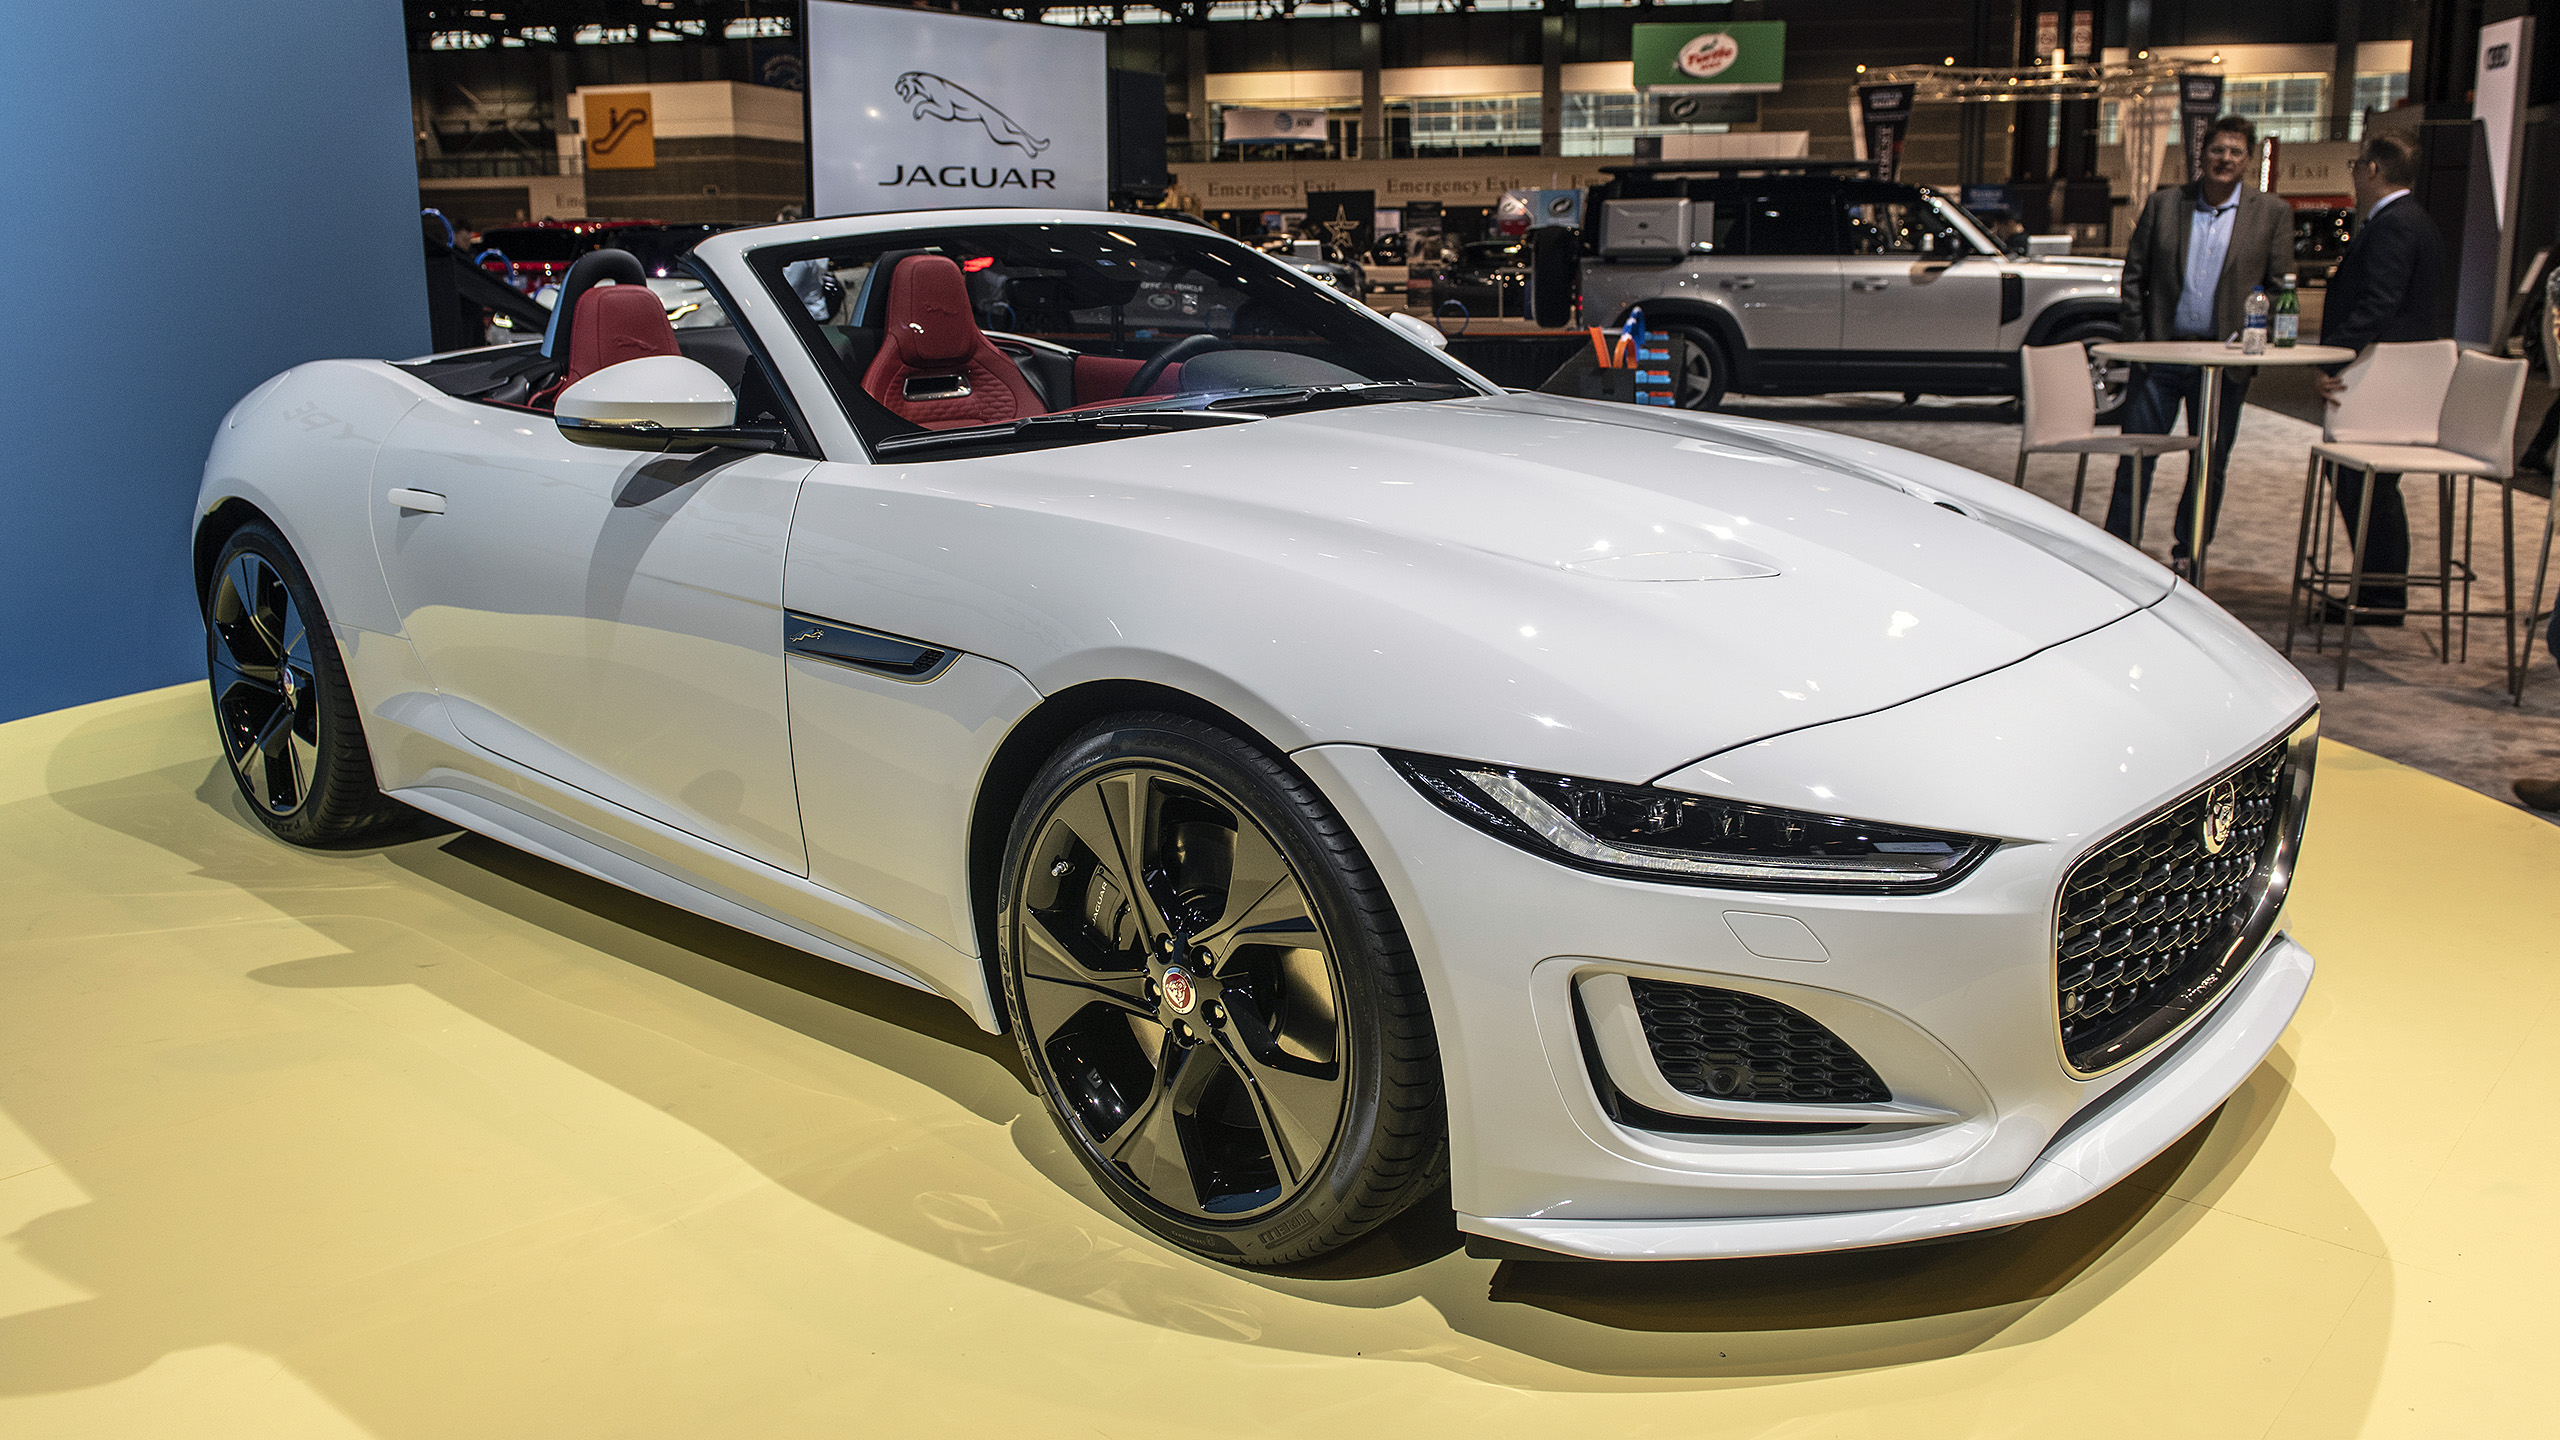 2021 jaguar ftype pricing announced for coupe